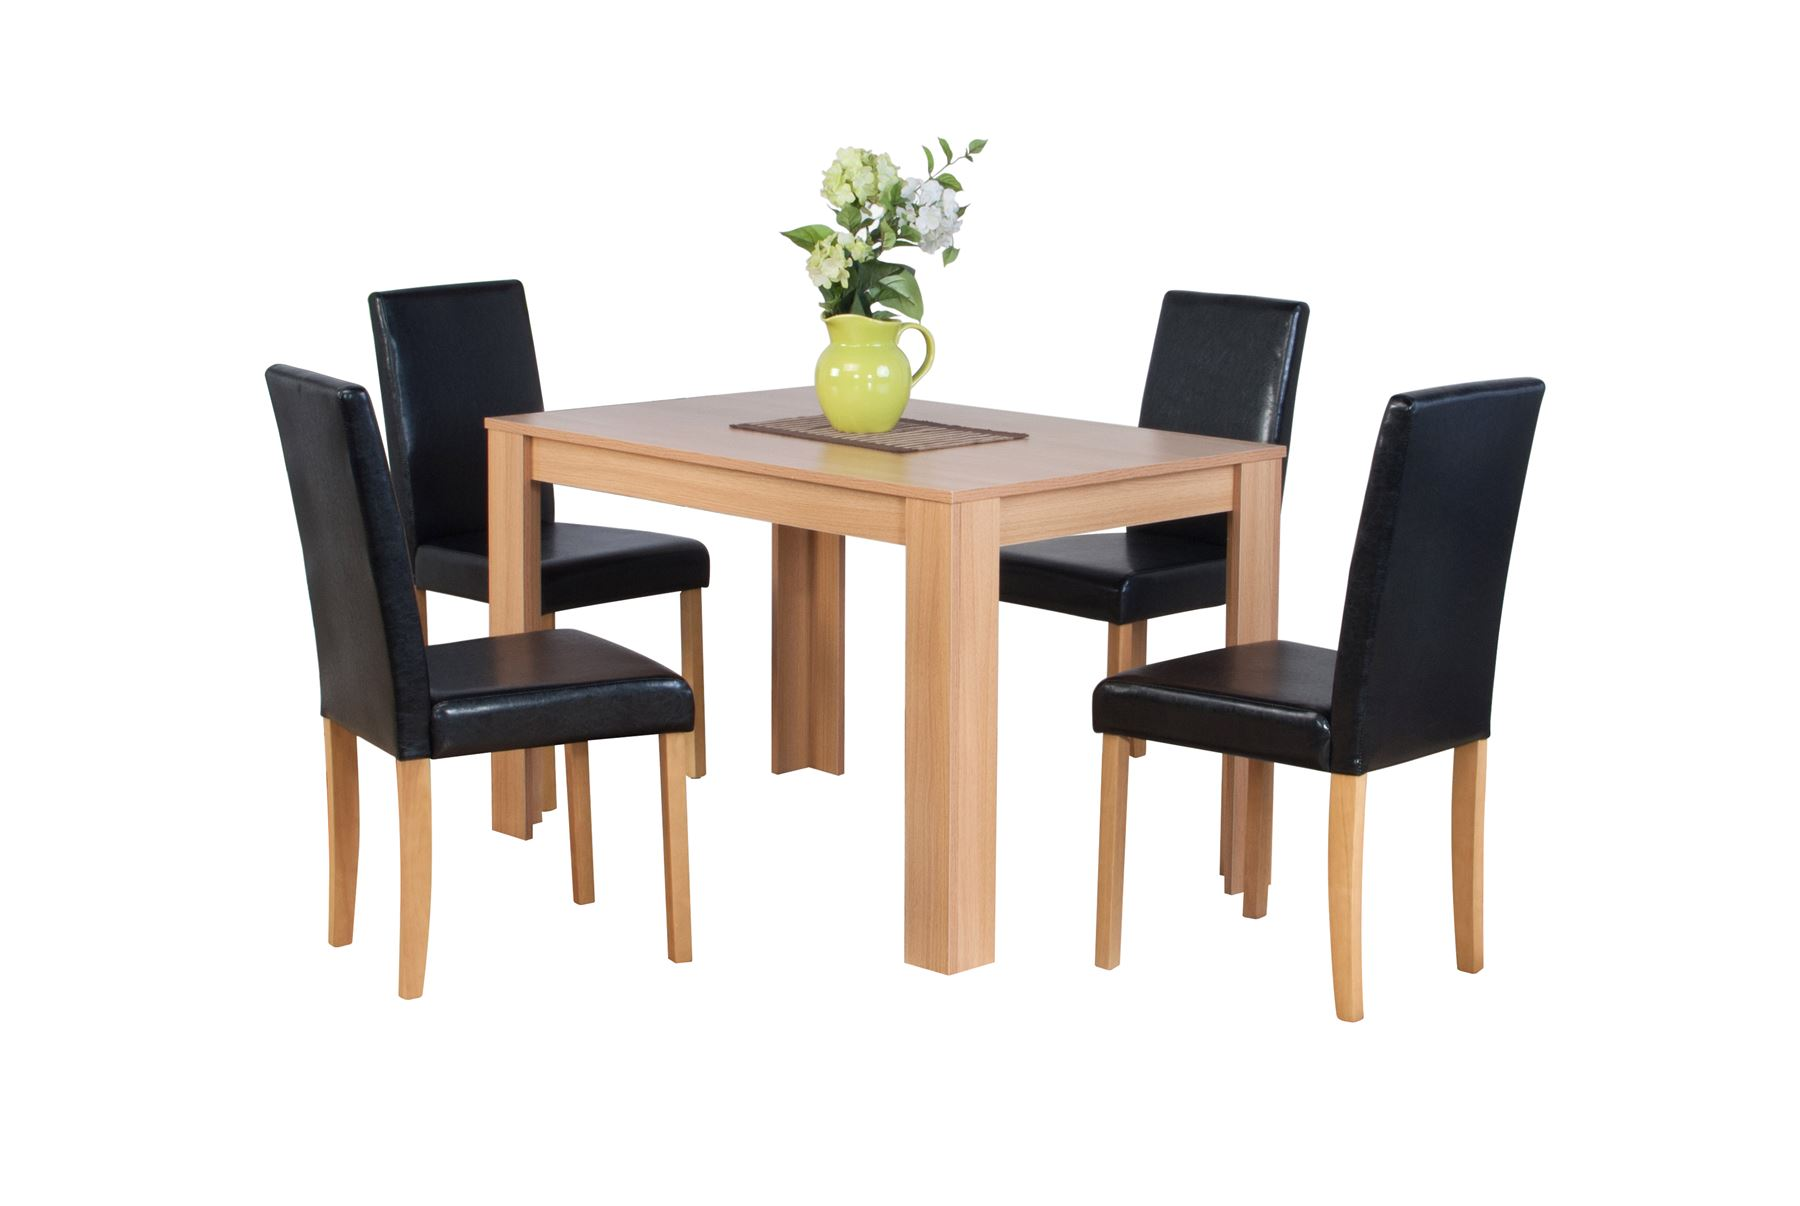 dark brown wooden dining chairs wedding chair covers hire northampton dover natural or oak effect table